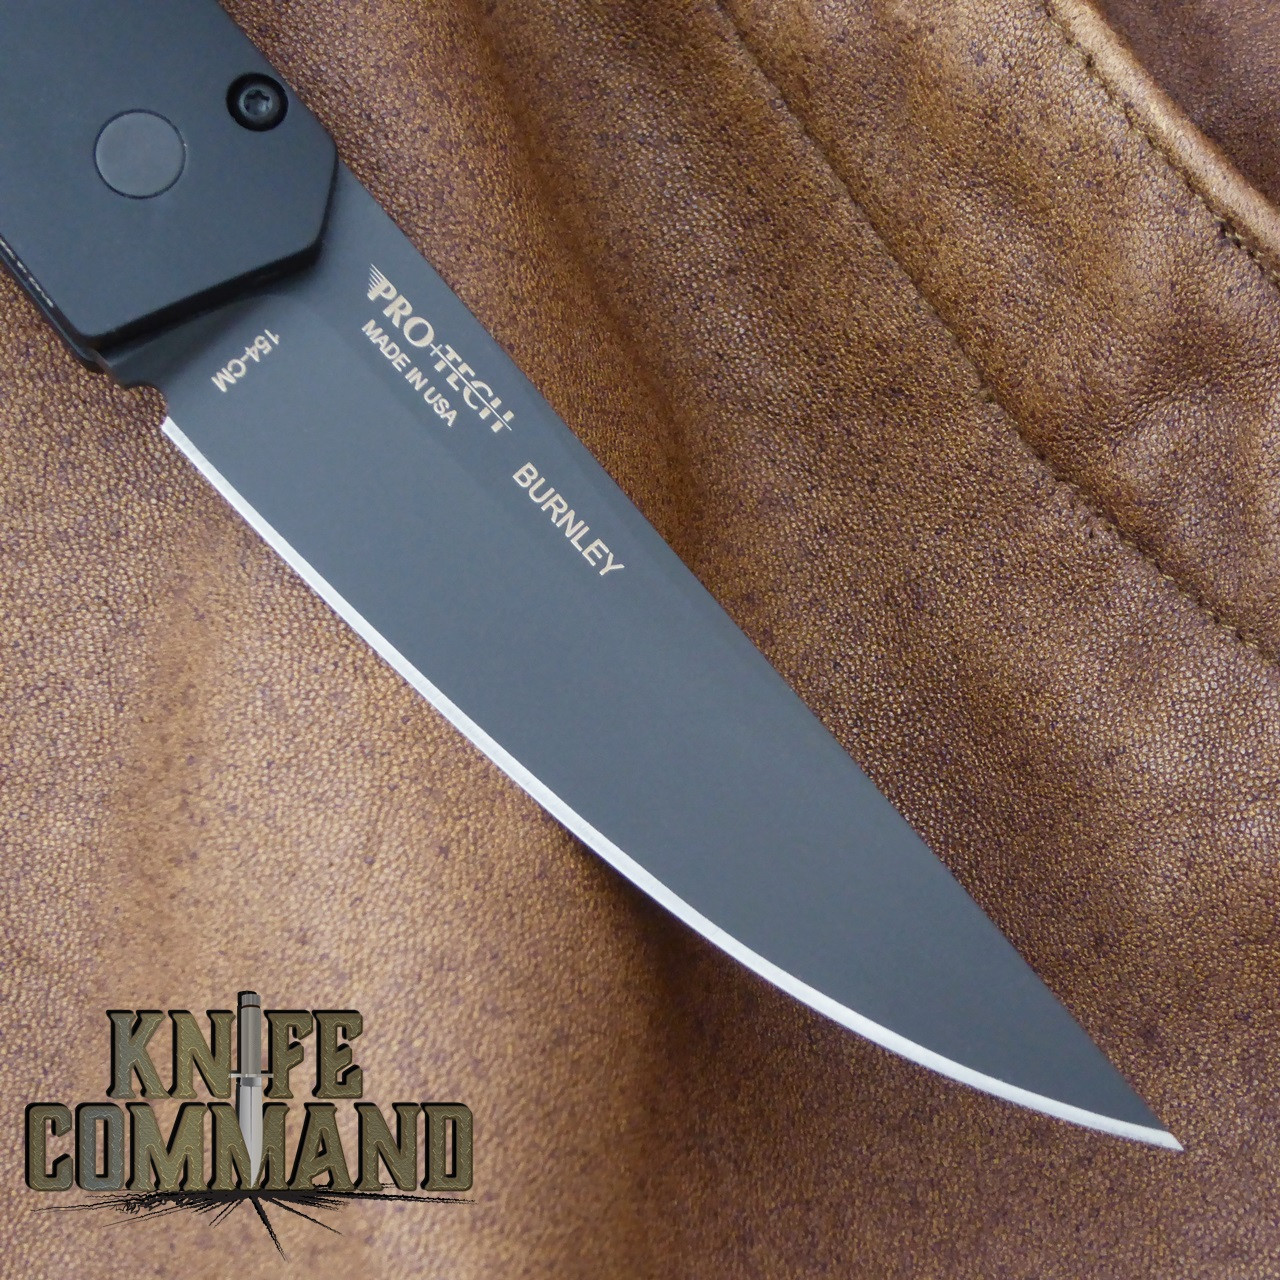 Boker Pro-Tech Burnley Kwaiken Automatic Knife Black Out 06EX292.  Black DLC 154CM stainless steel.